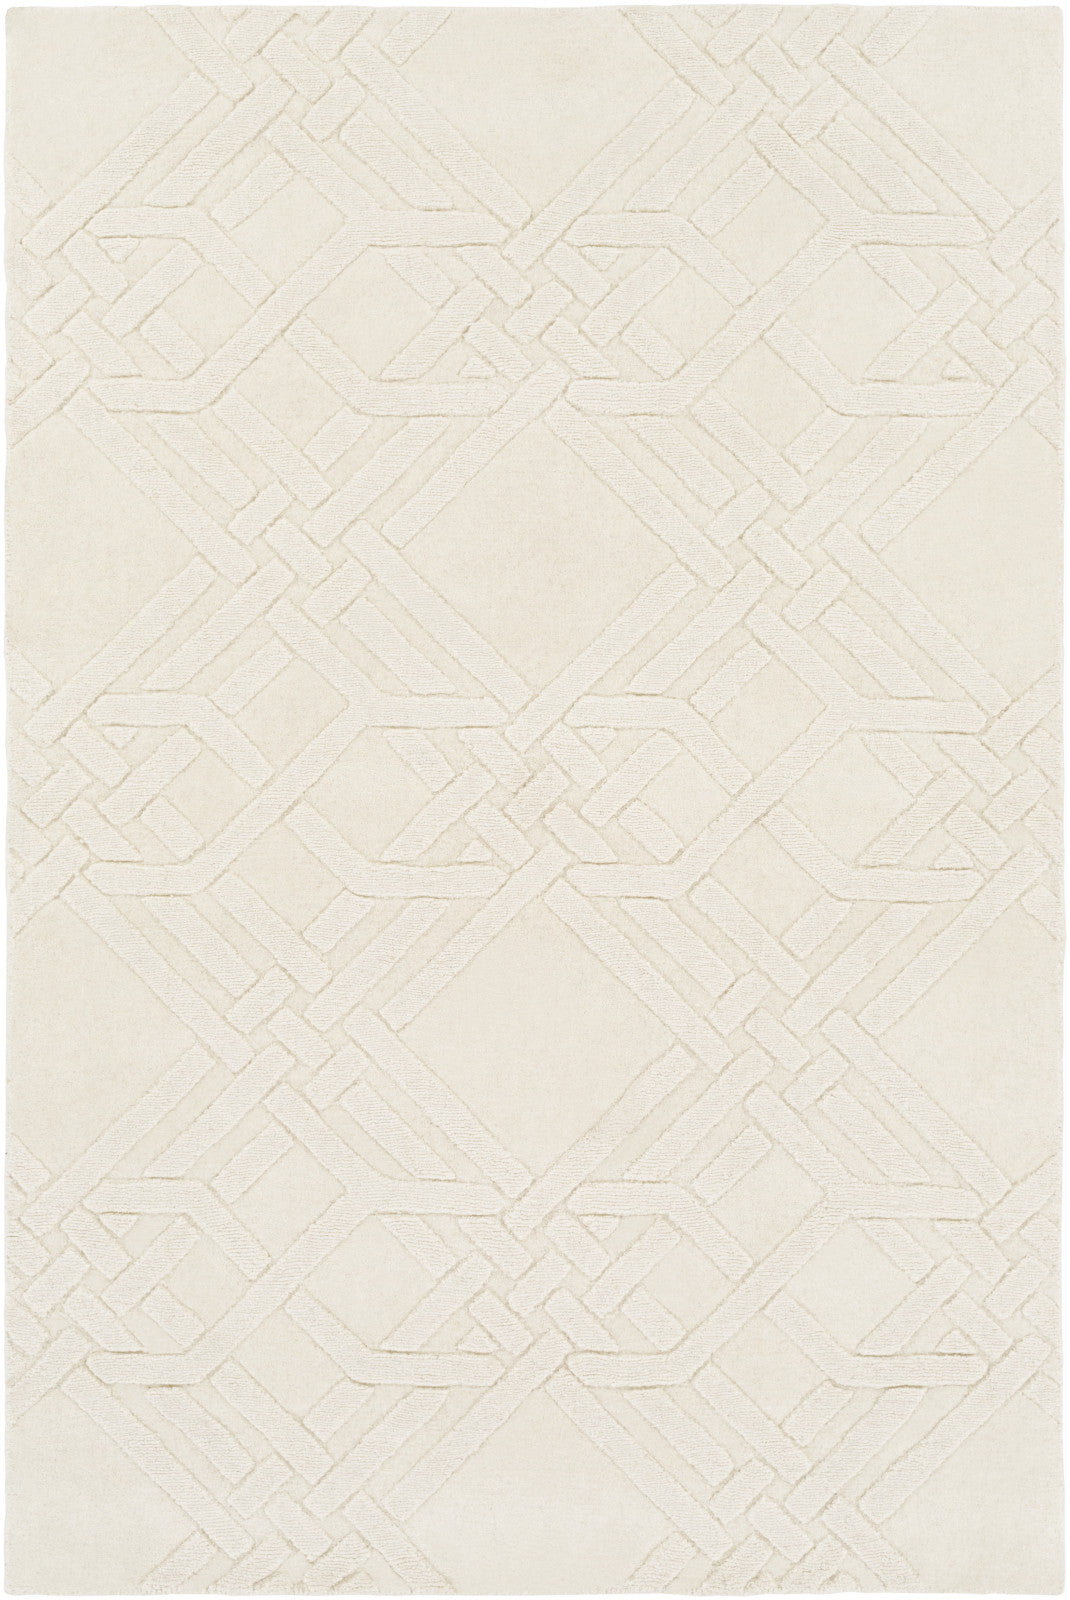 Surya The Oakes OAK-6001 Area Rug by Florence Broadhurst